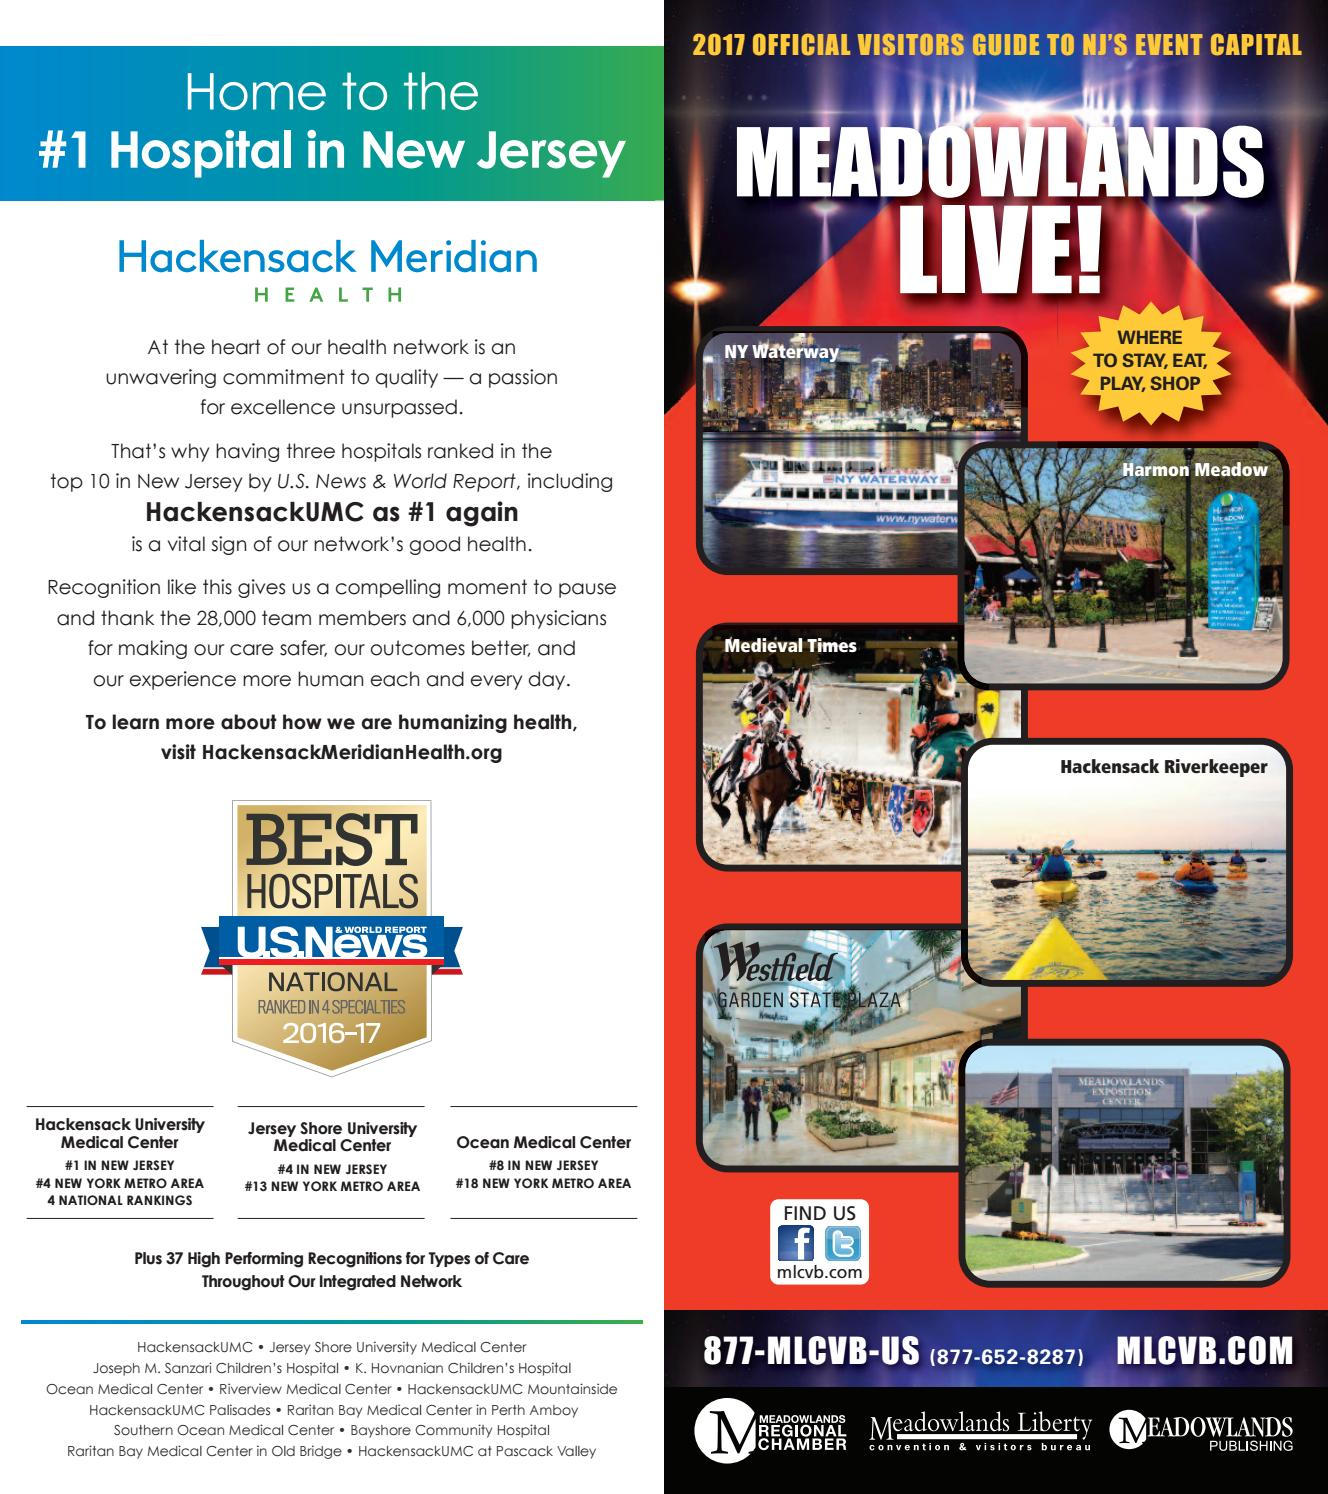 hight resolution of 2017 meadowlands liberty region visitors guide by meadowlands media issuu